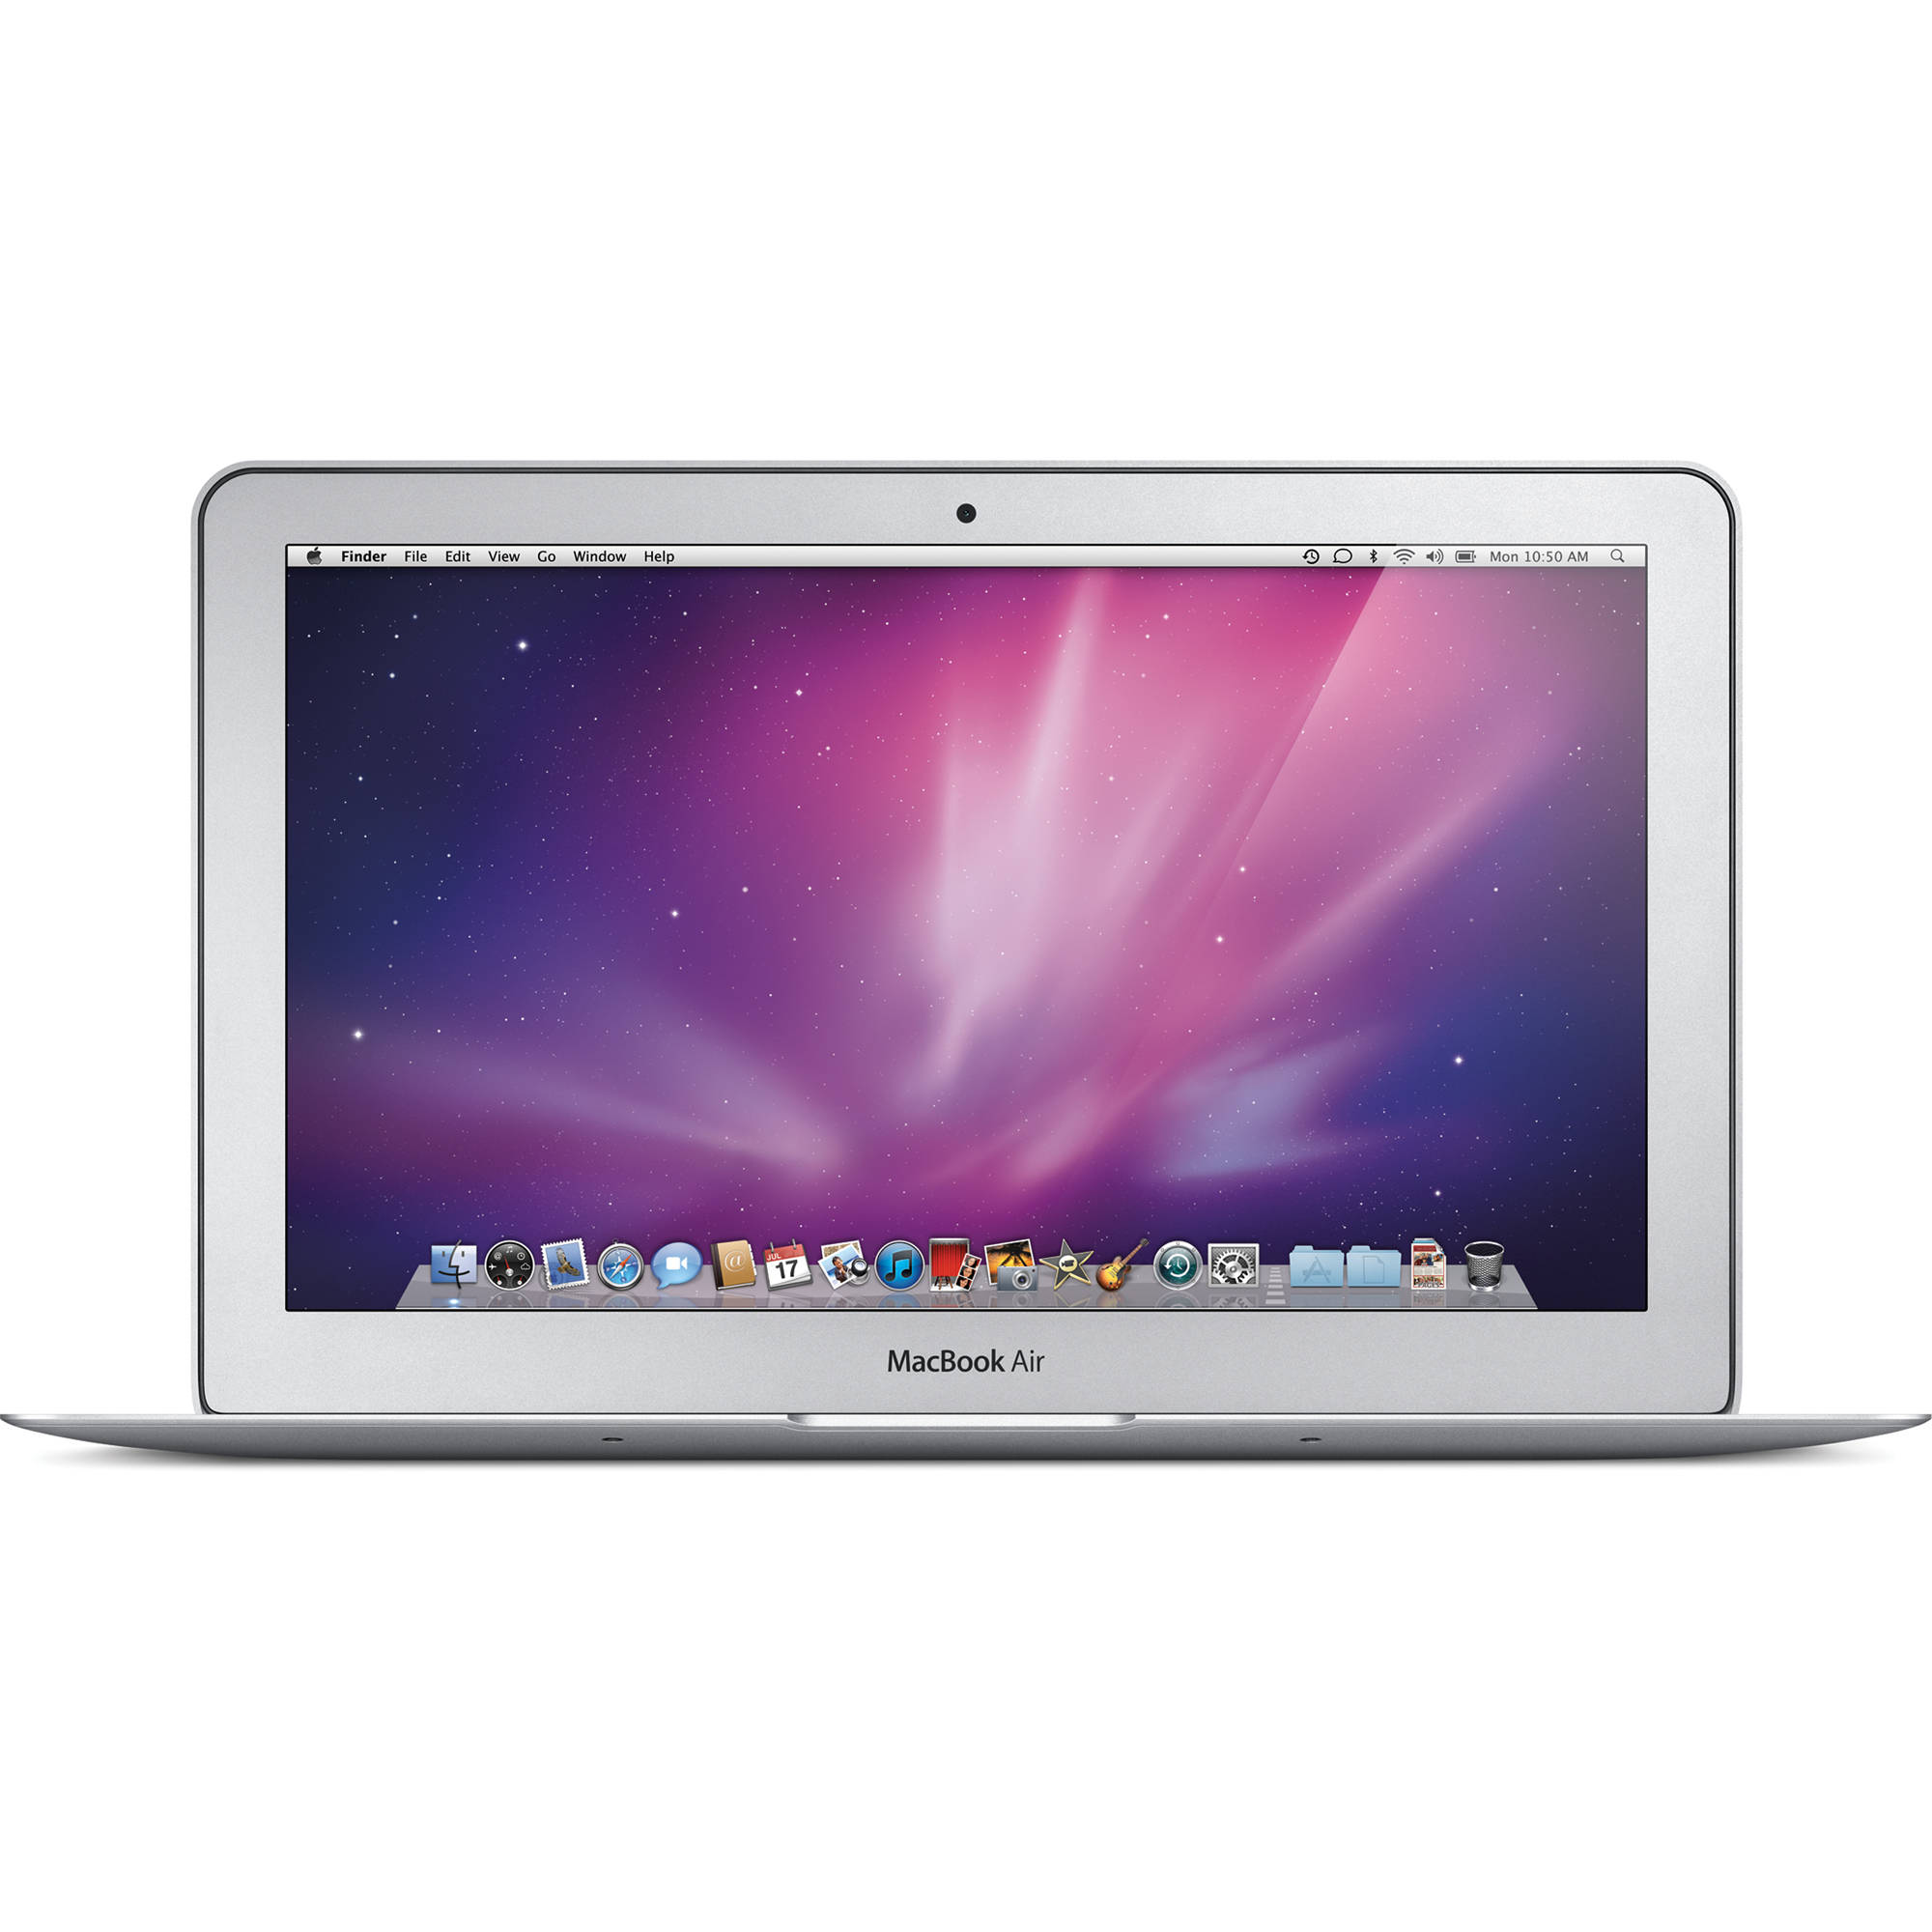 Apple 116 Macbook Air Notebook Computer Z0jk 0001 Bh Advance Speaker Portable Komputer Duo 30